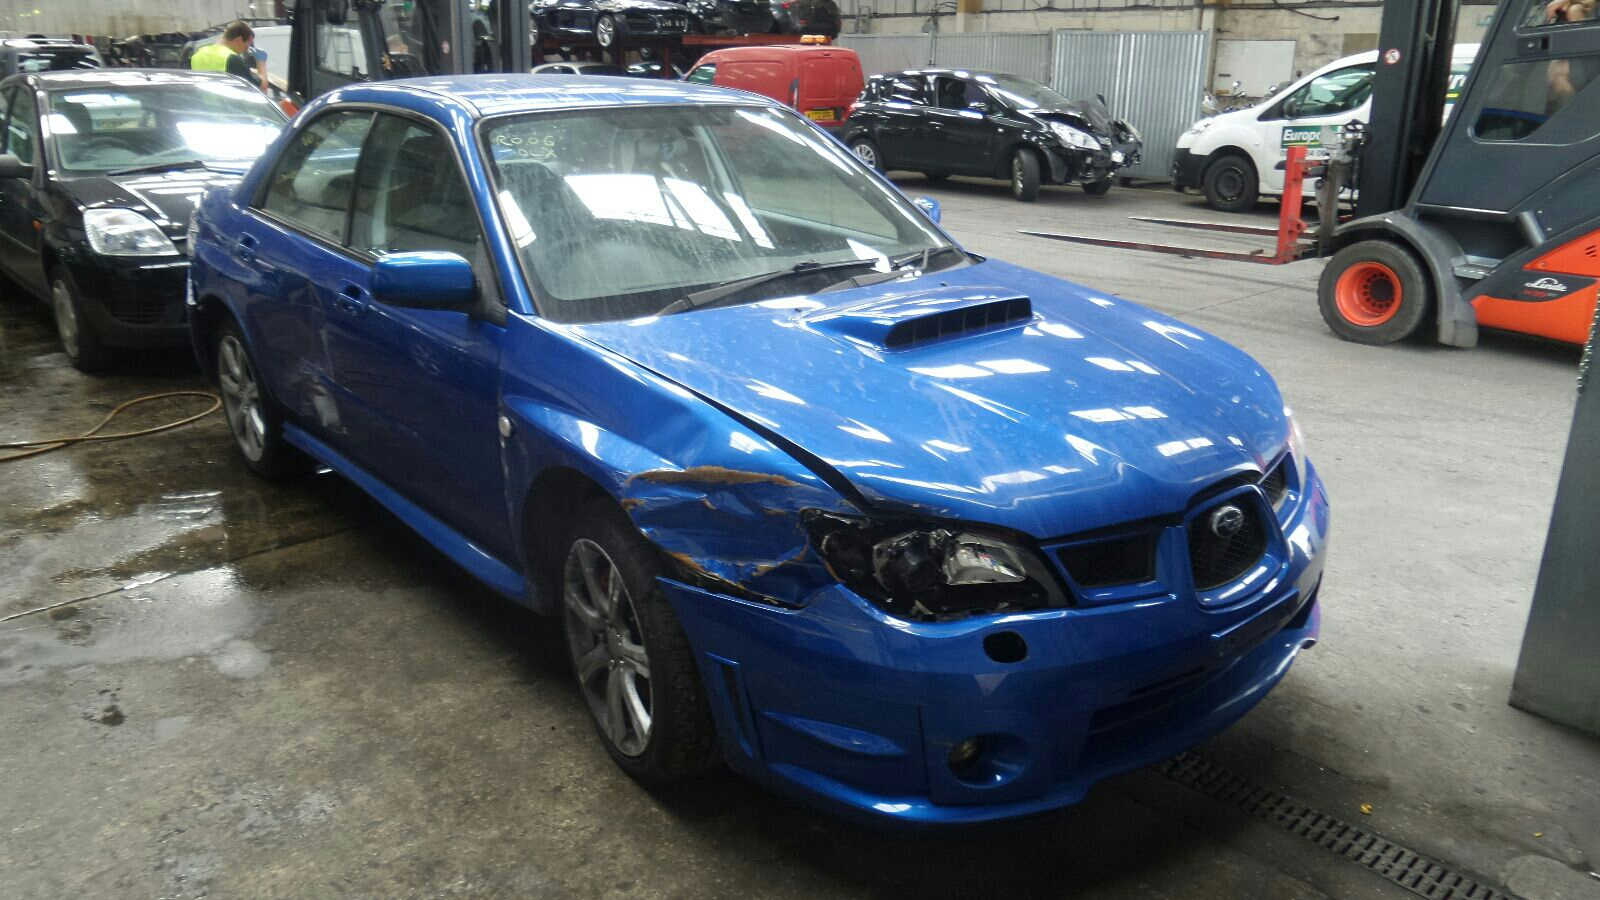 Image for a Subaru Impreza 2006 4 Door Saloon